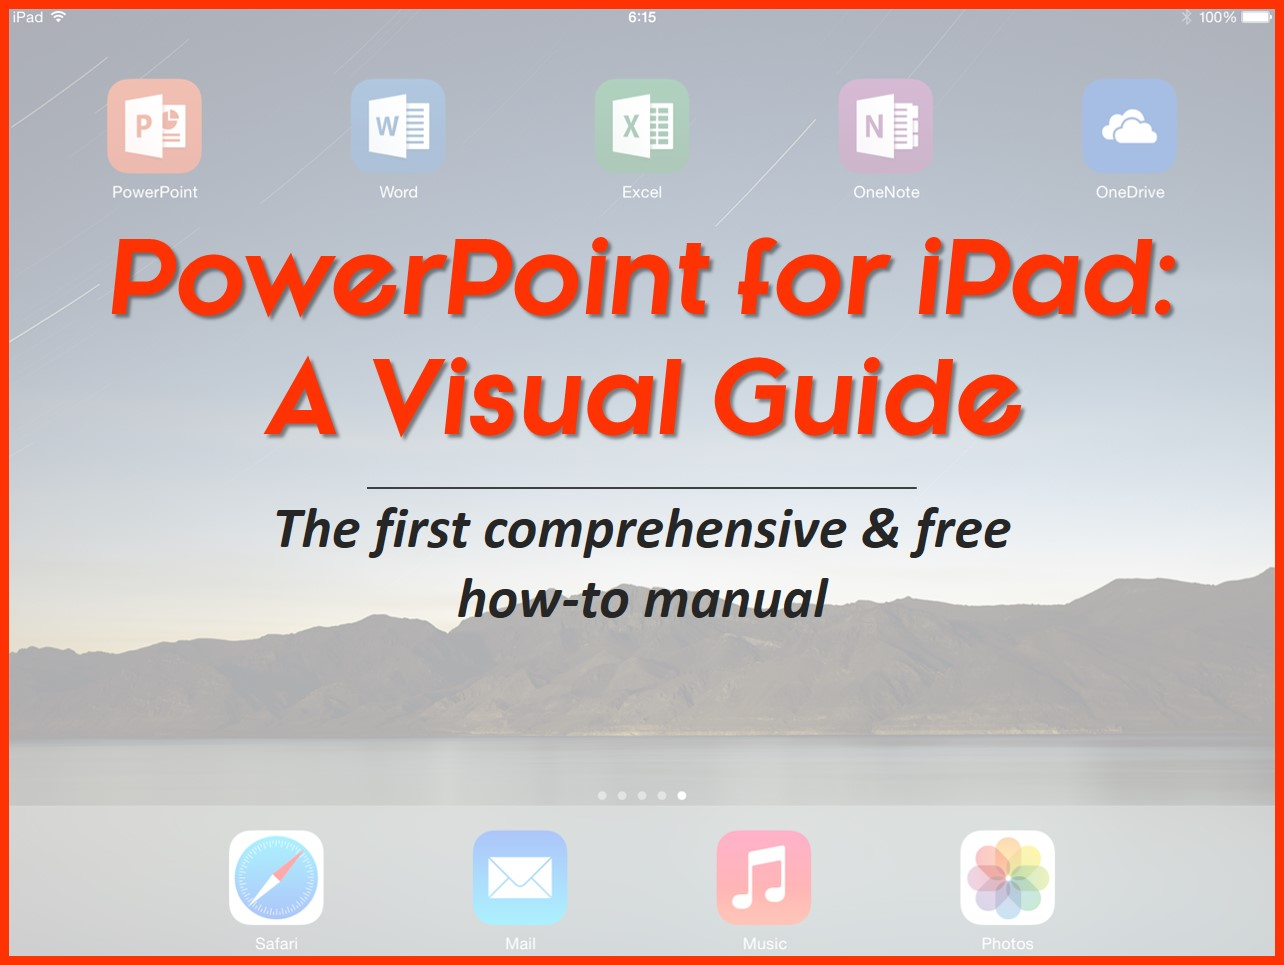 """PowerPoint for iPad: A Visual Guide - Free and Comprehensive How To Manual"""